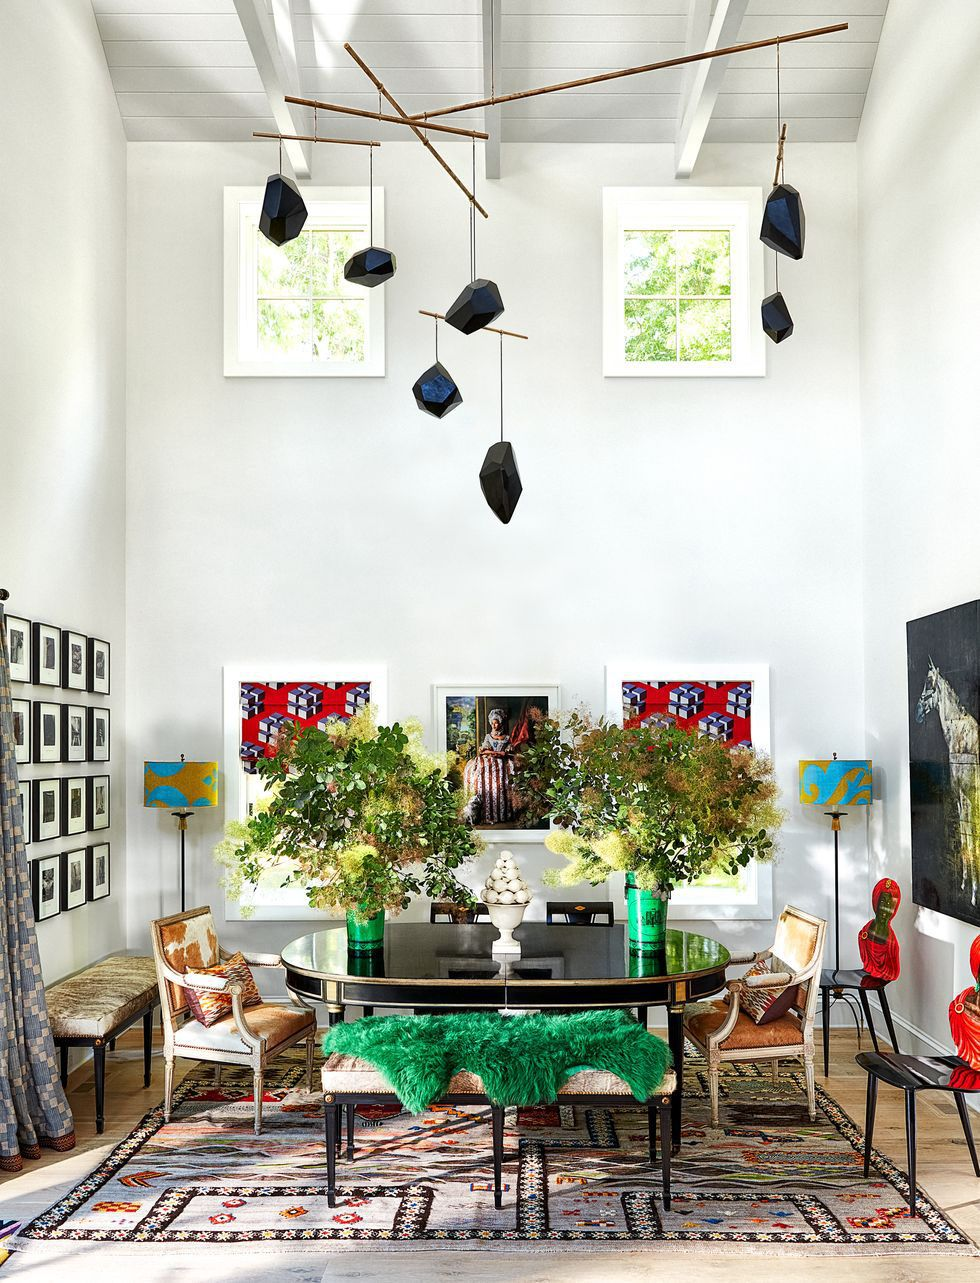 510 Dining Rooms Ideas In 2021 Elle Decor Dining Home Decor